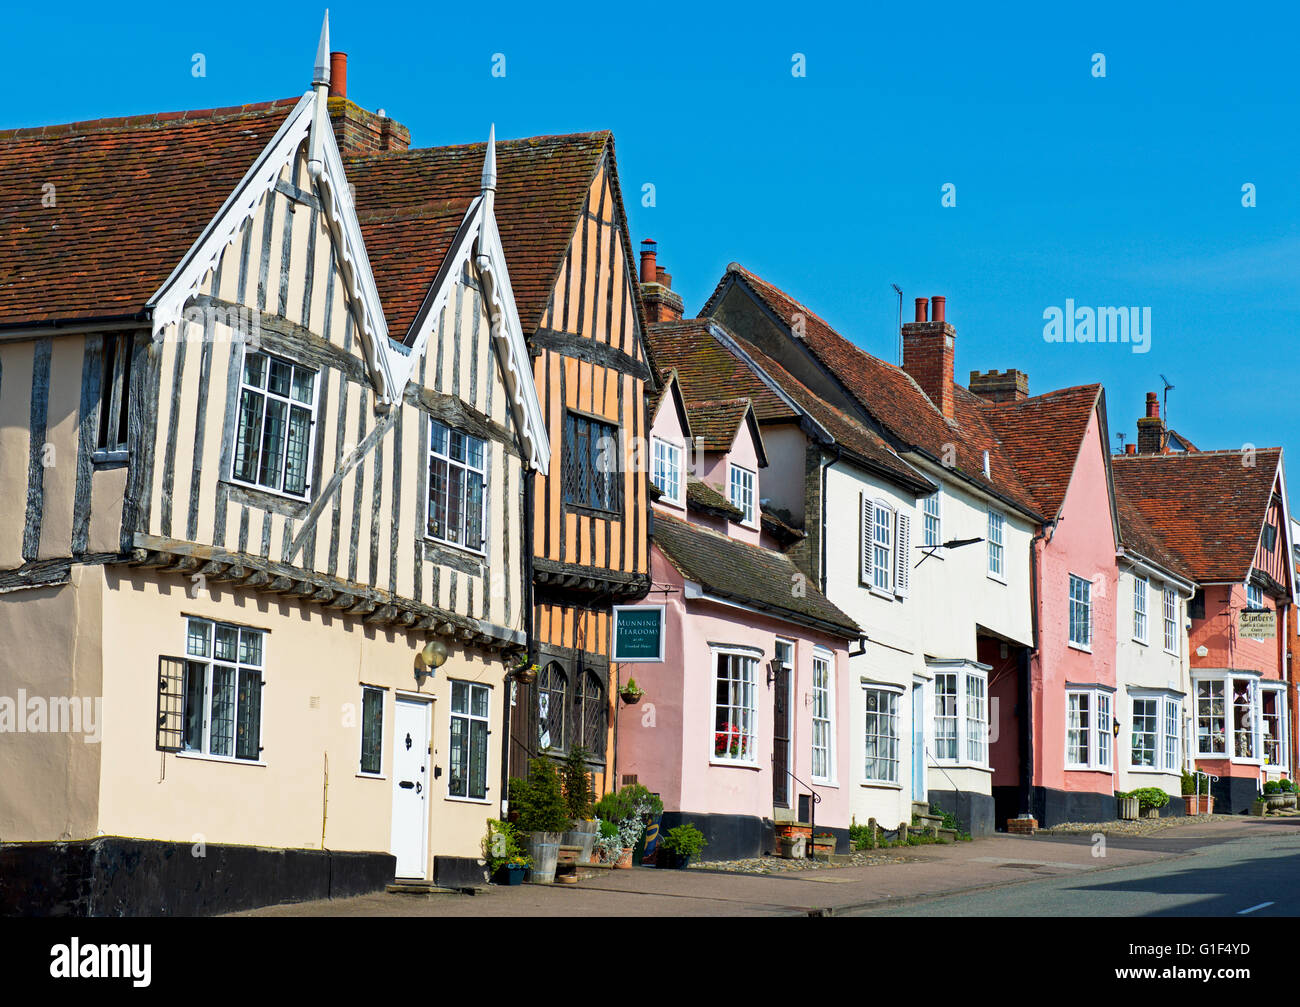 the-crooked-house-in-the-village-of-lavenham-suffolk-england-uk-G1F4YD.jpg